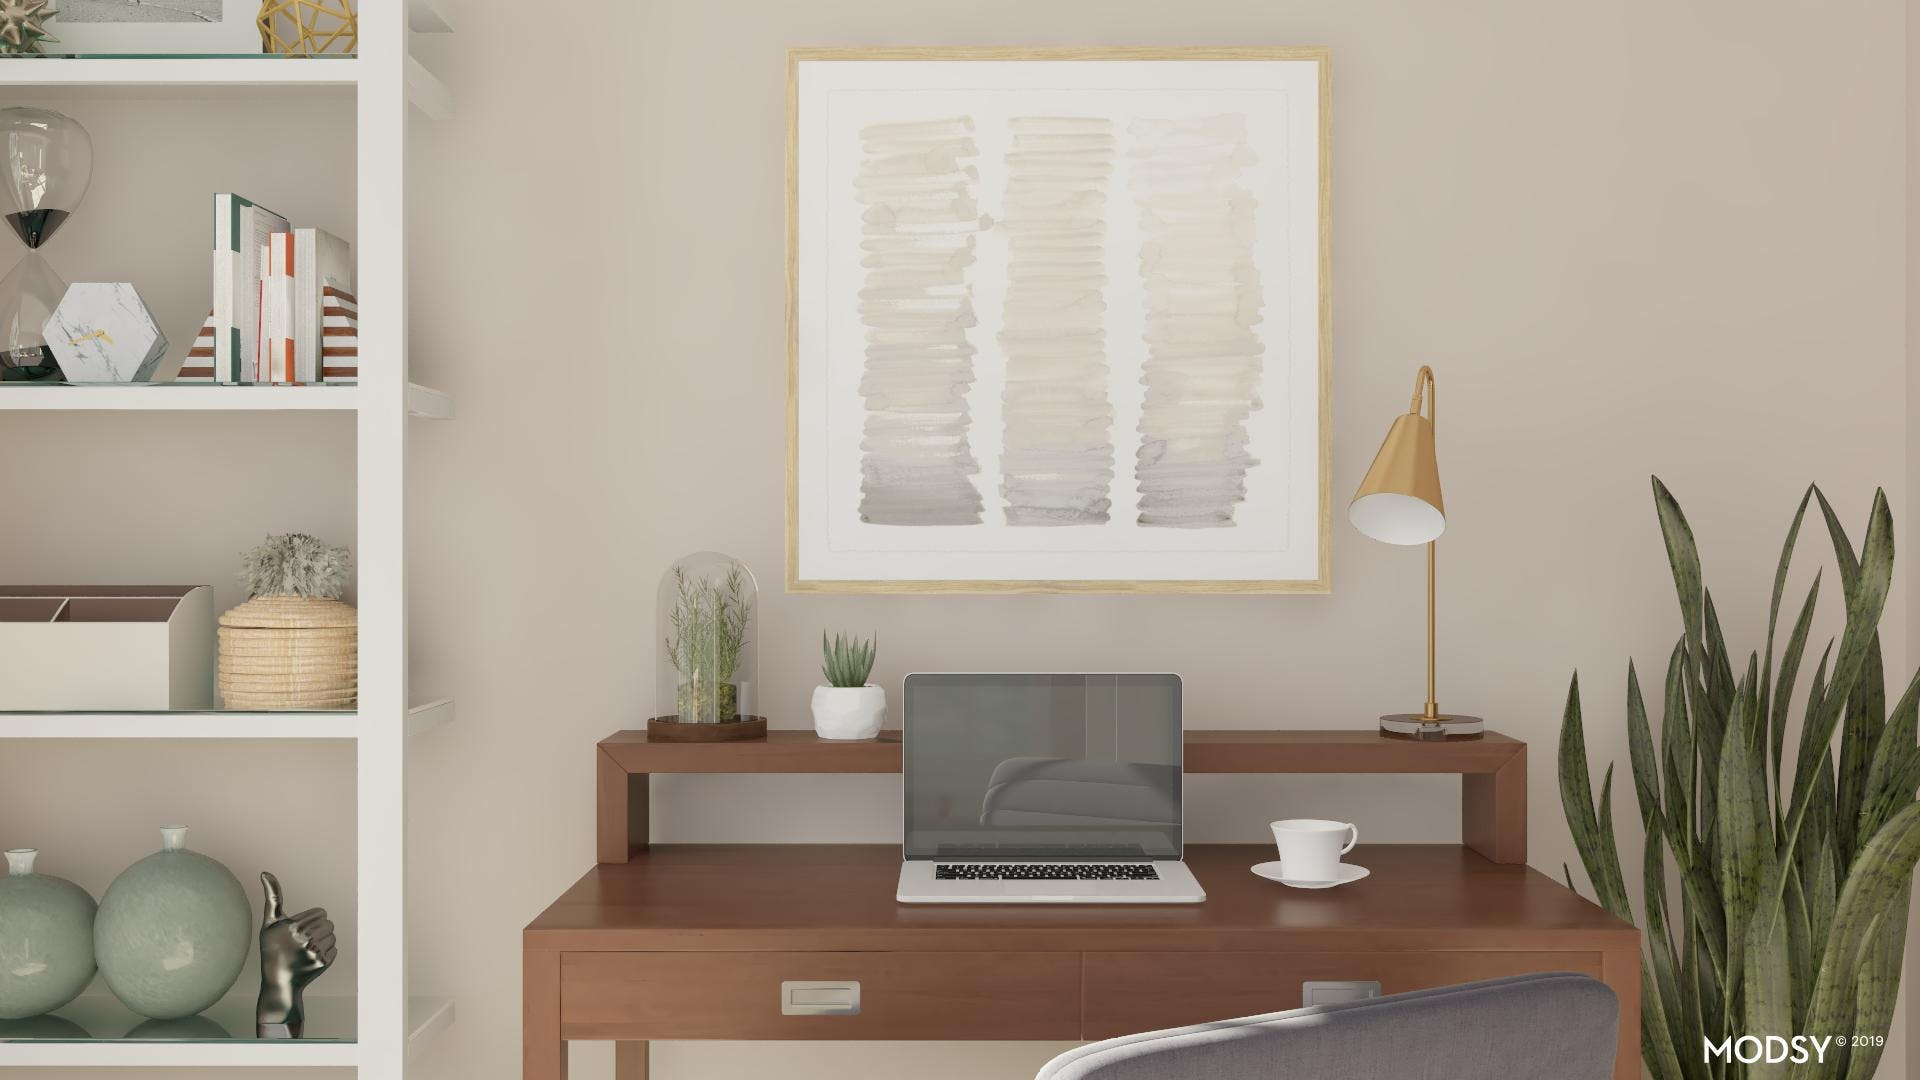 Clutter-Free Home Office